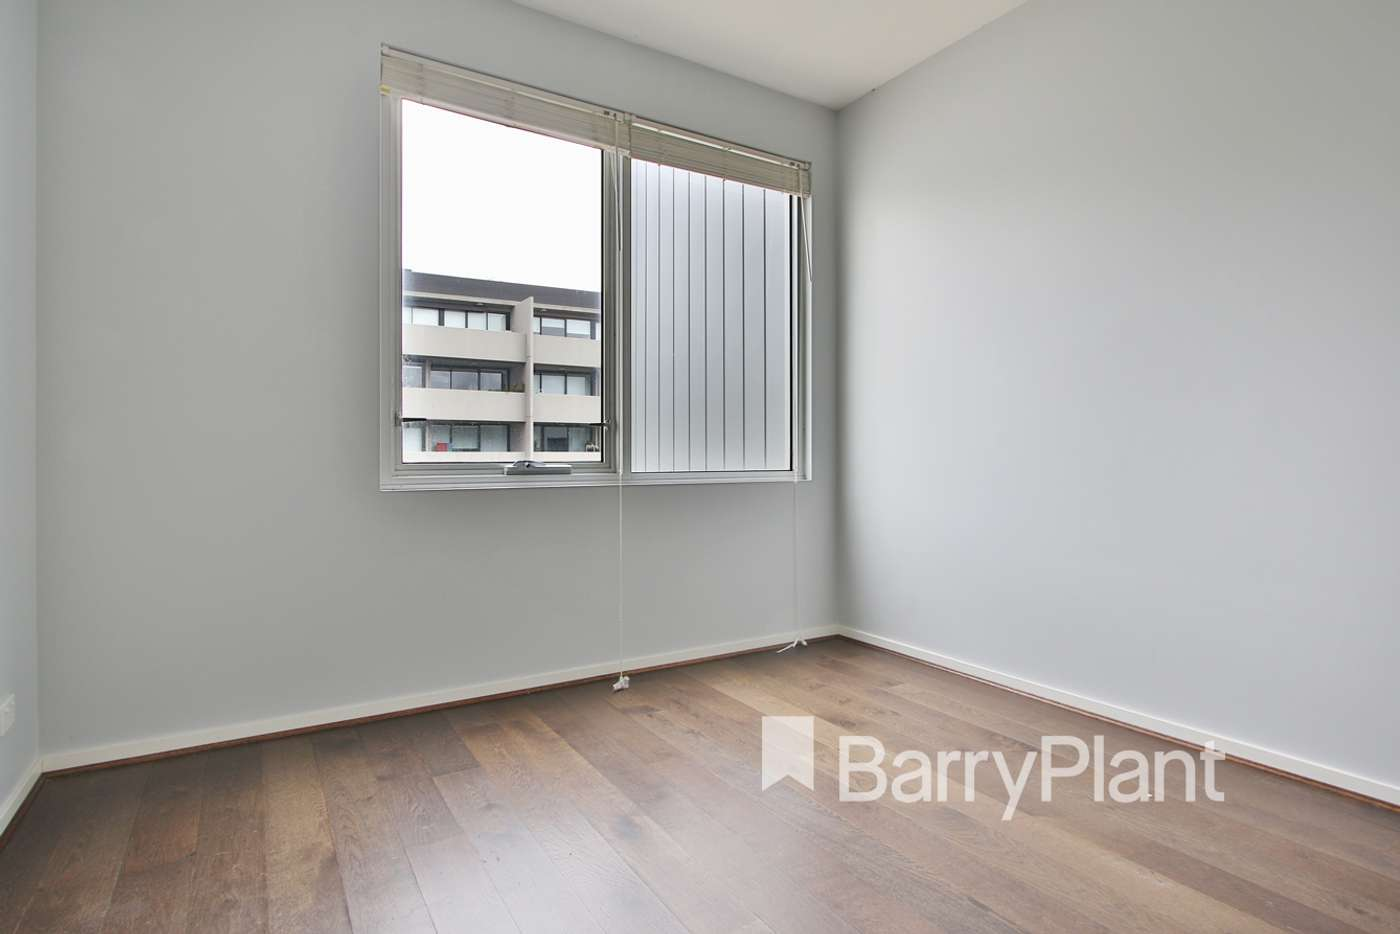 Sixth view of Homely apartment listing, 214/8 Berkeley Street, Doncaster VIC 3108